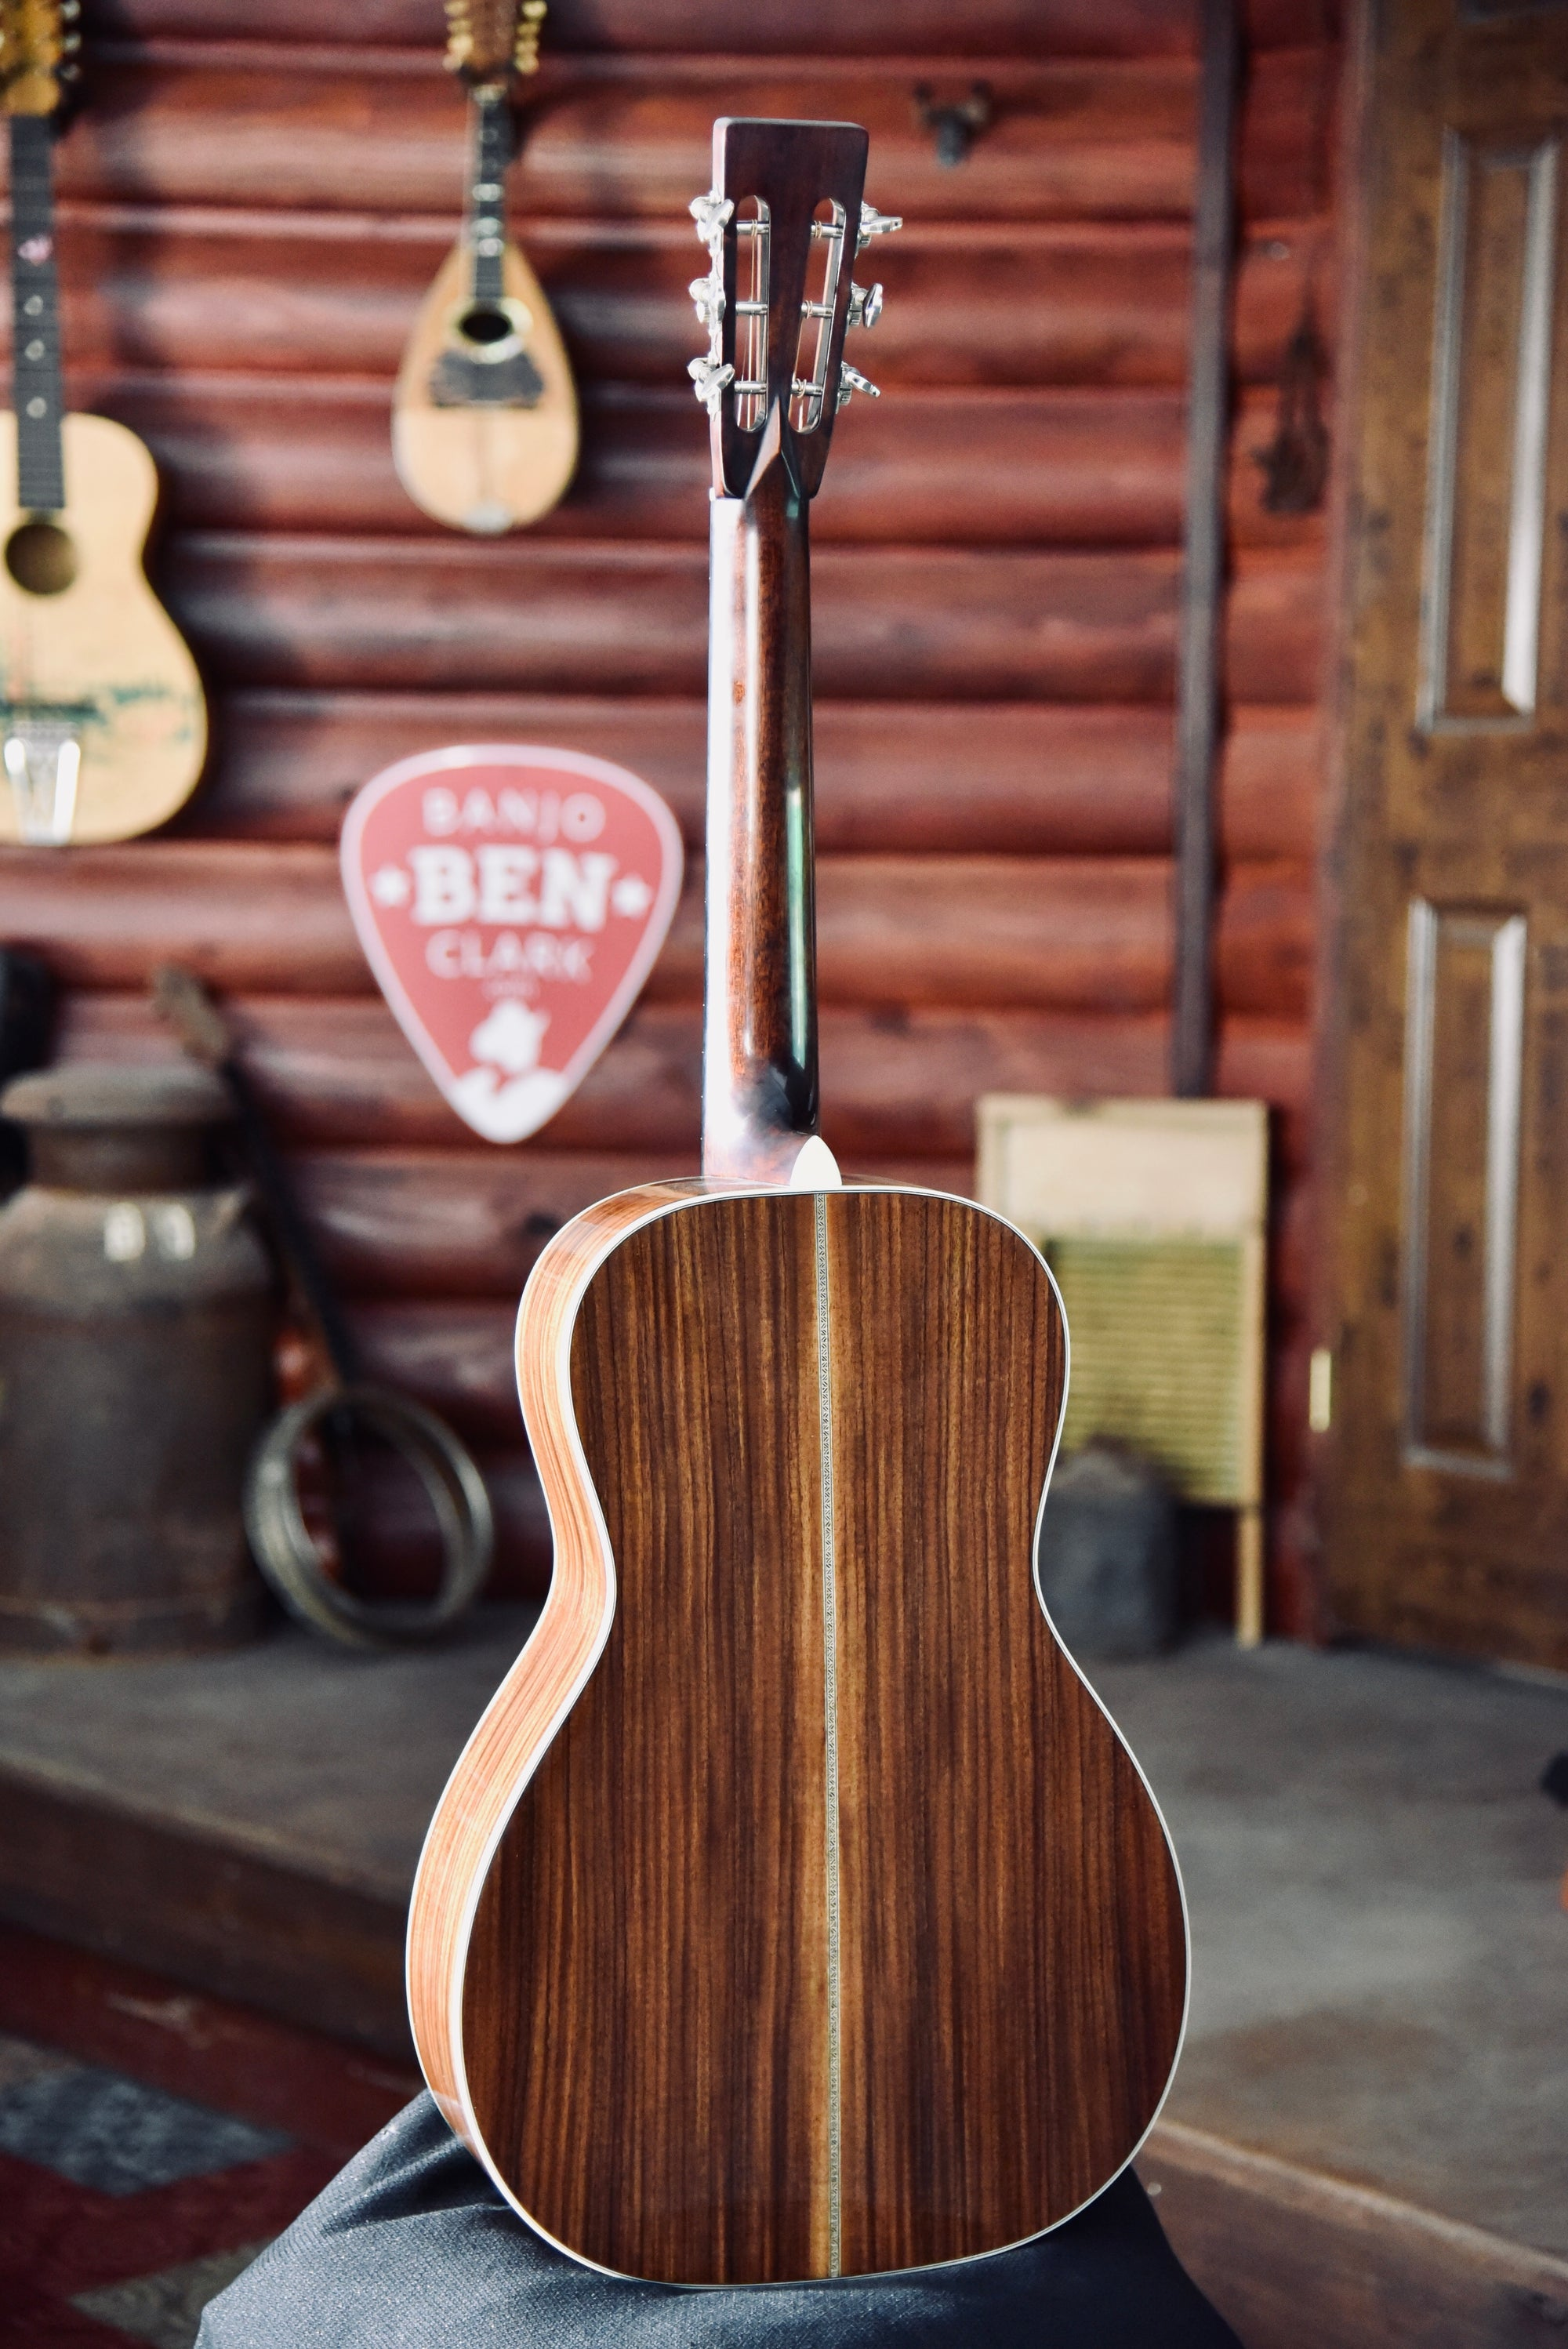 eastman e20p parlor sized adirondack rosewood acoustic guitar with cas banjo ben clark. Black Bedroom Furniture Sets. Home Design Ideas